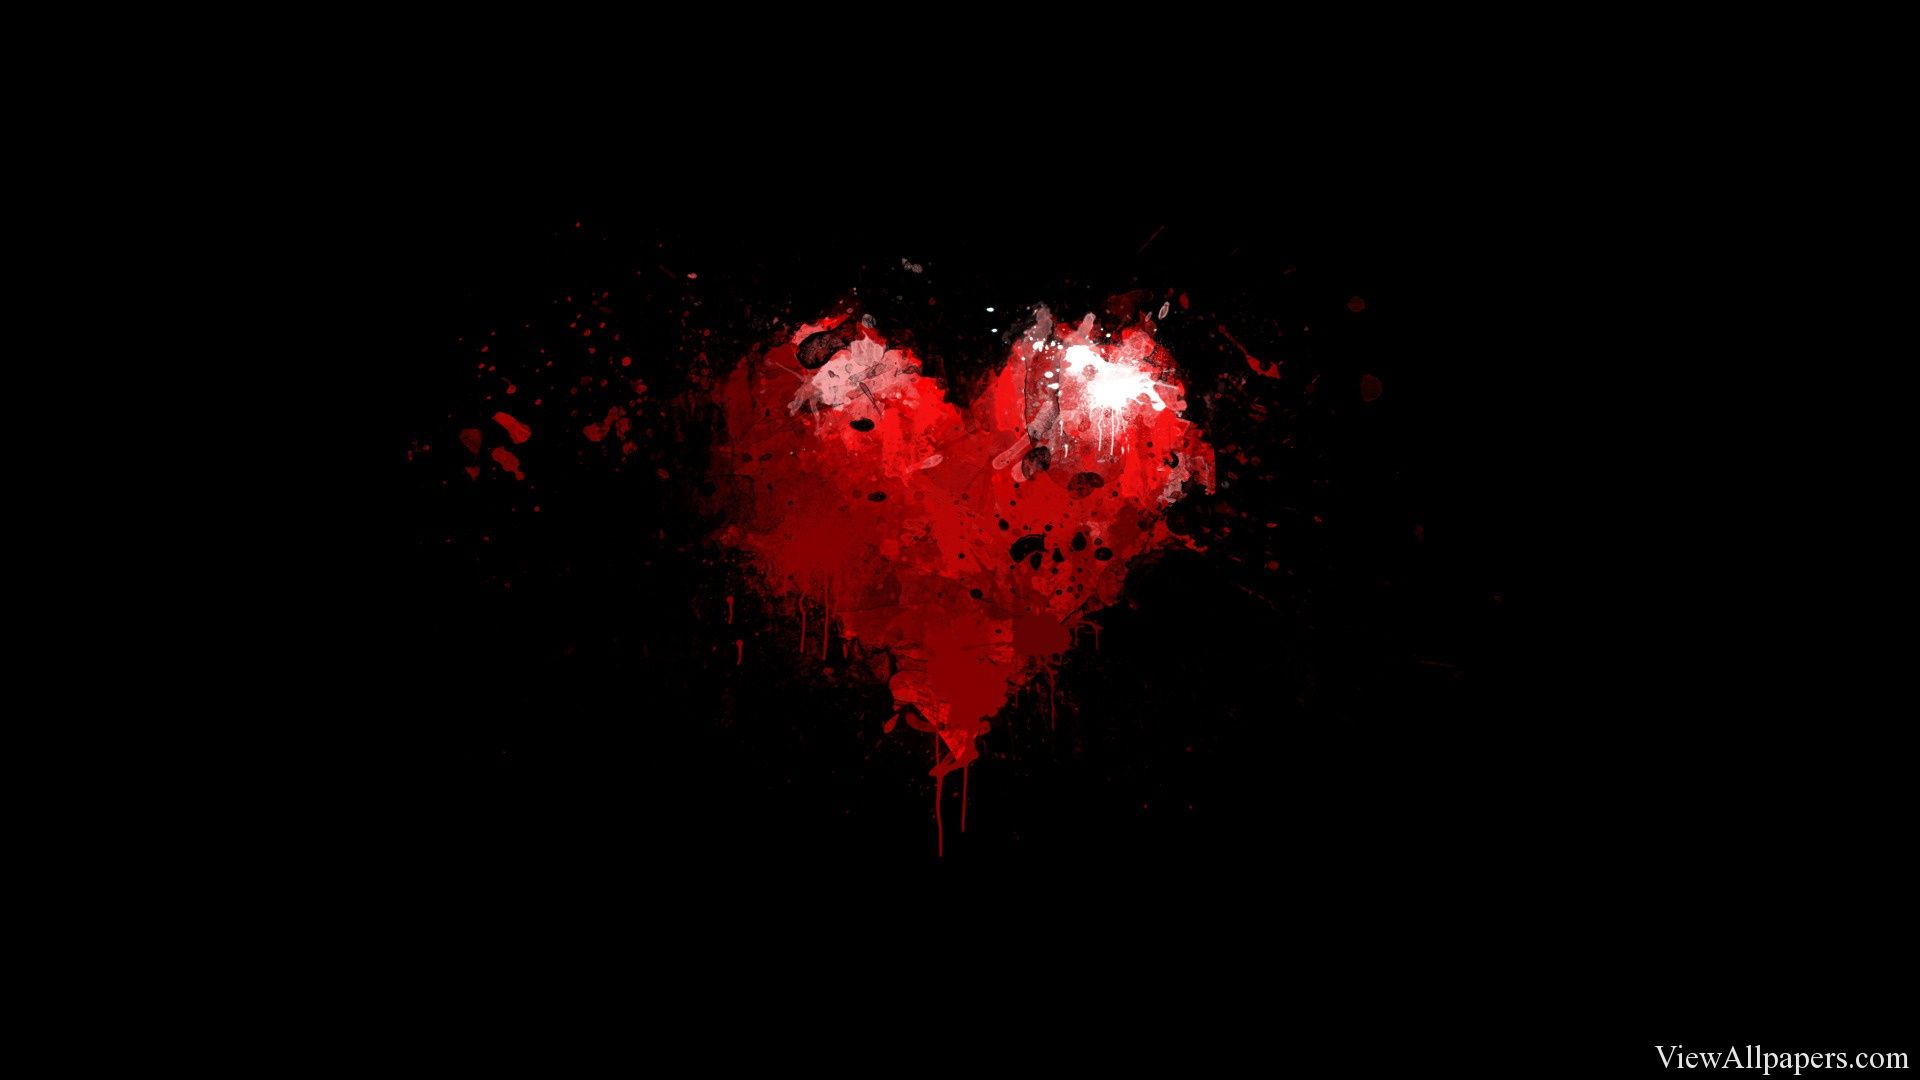 Painted Red Heart on Black Background Wallpaper | 13 ...